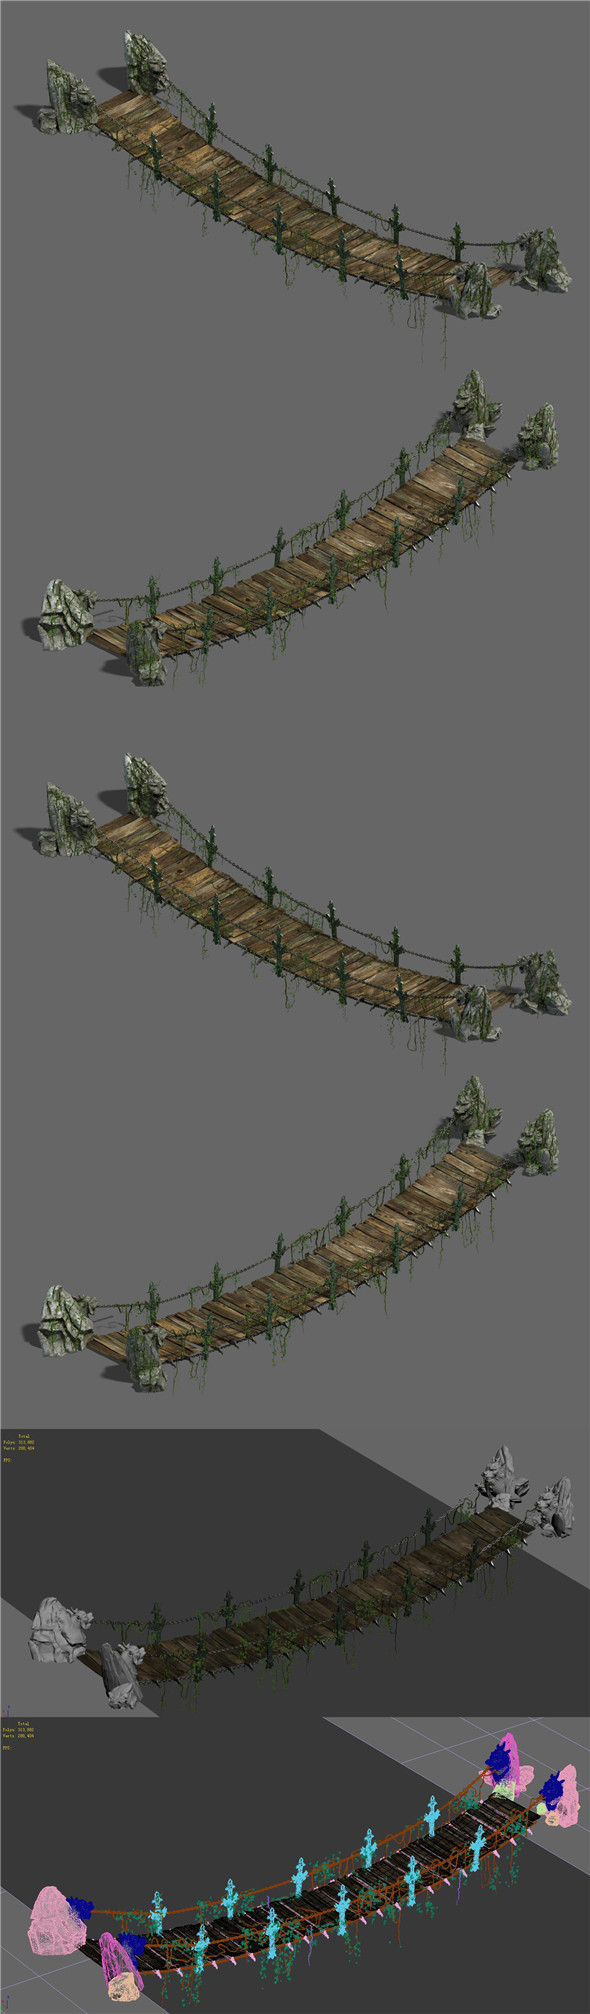 Shushan - suspension bridge - 3DOcean Item for Sale